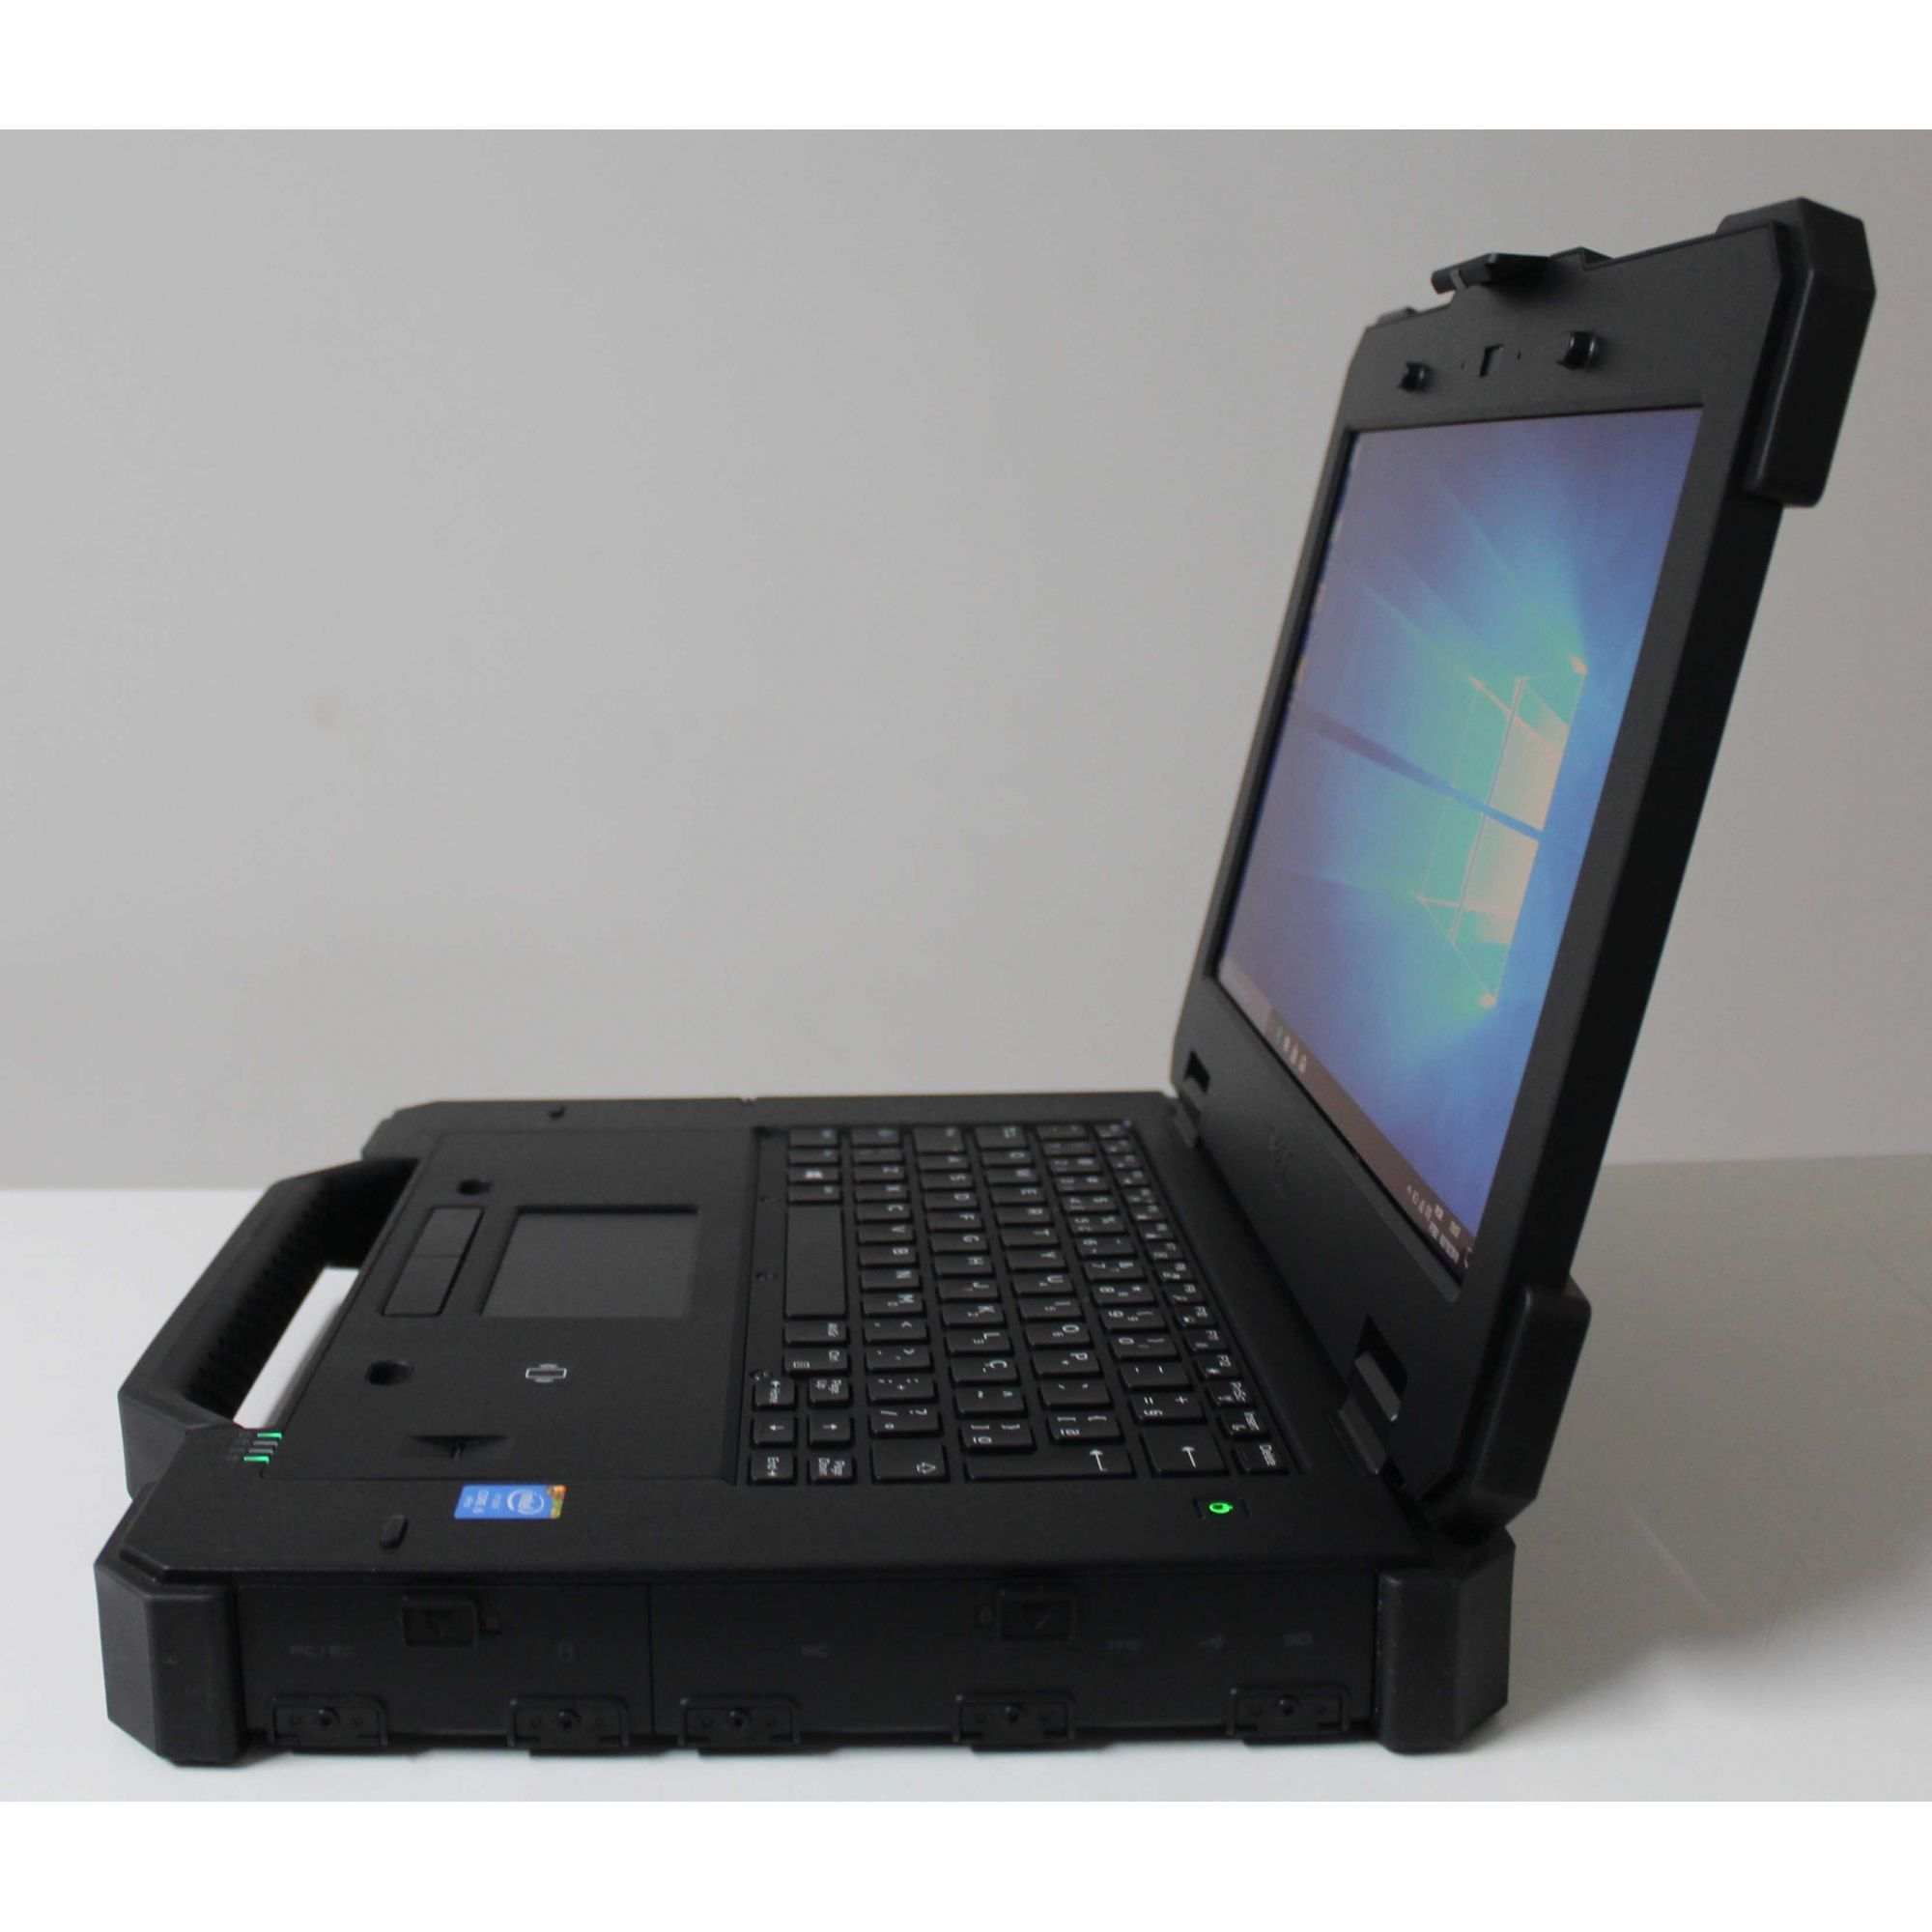 Notebook Dell Rugged 7404 14'' Intel Core i5 1.9GHz 16GB SSD-256GB - SERIAL DB9, Robusto!